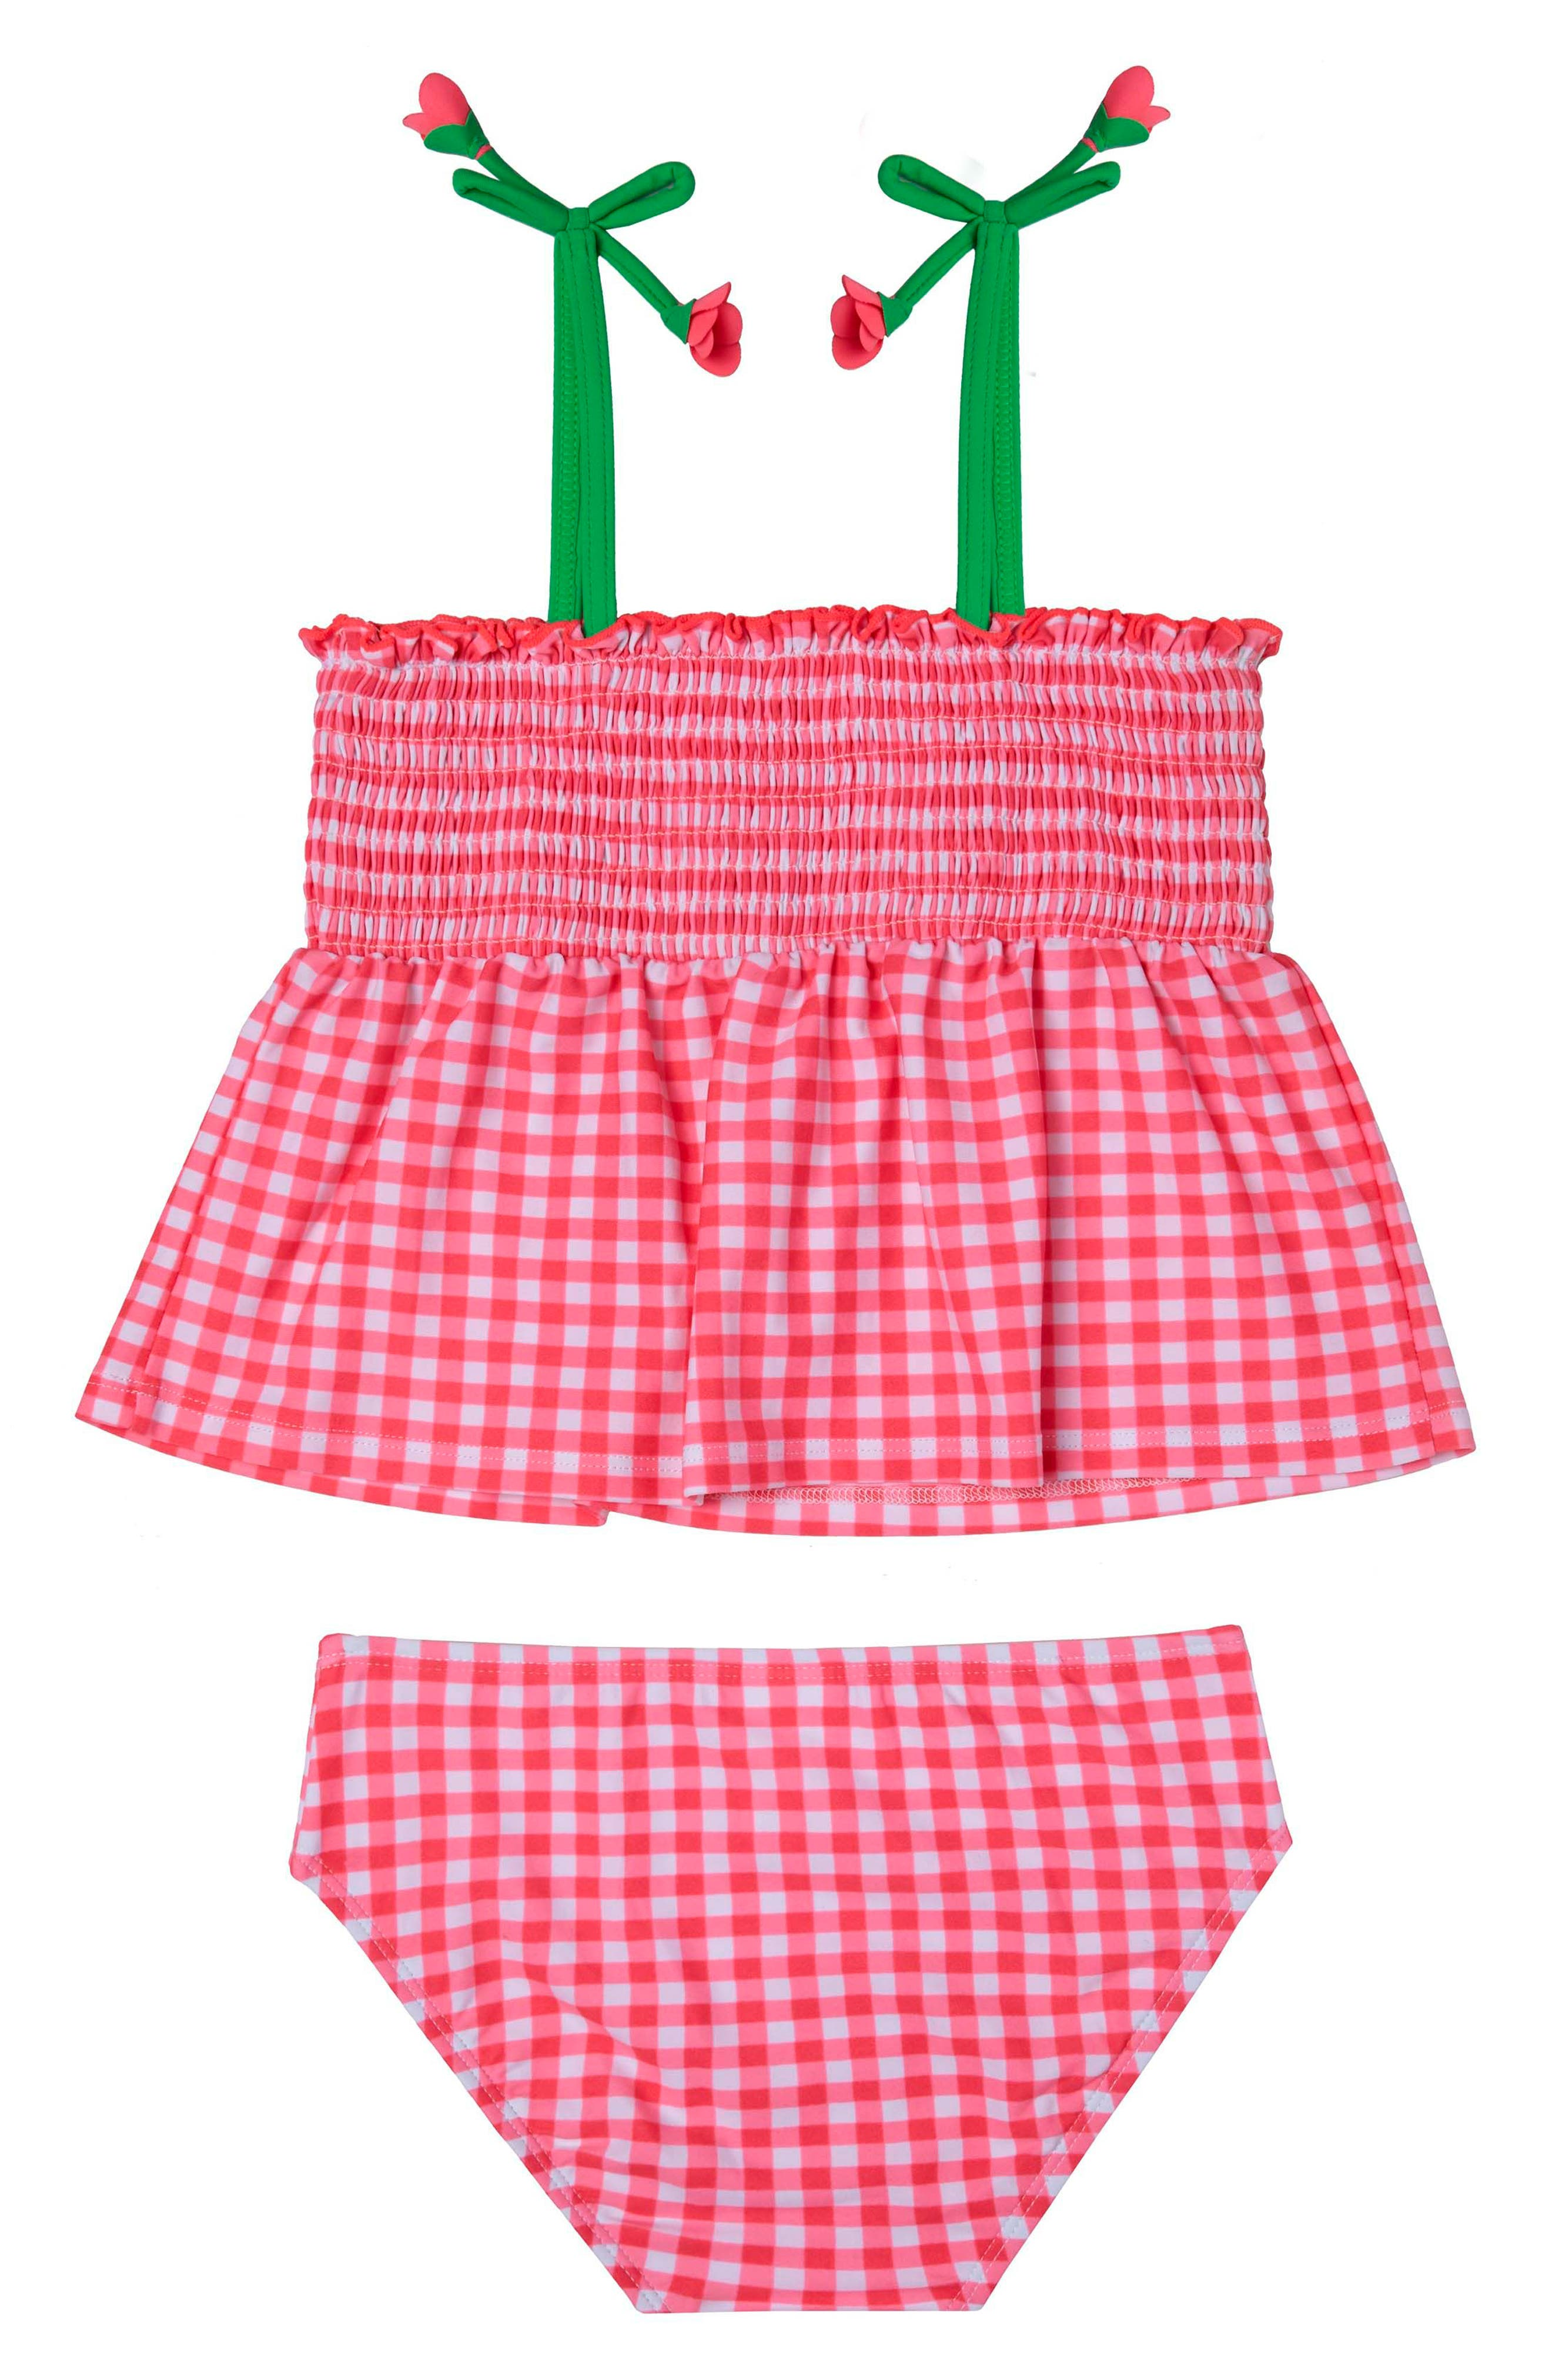 Picnic Gingham Two-Piece Swimsuit,                         Main,                         color,